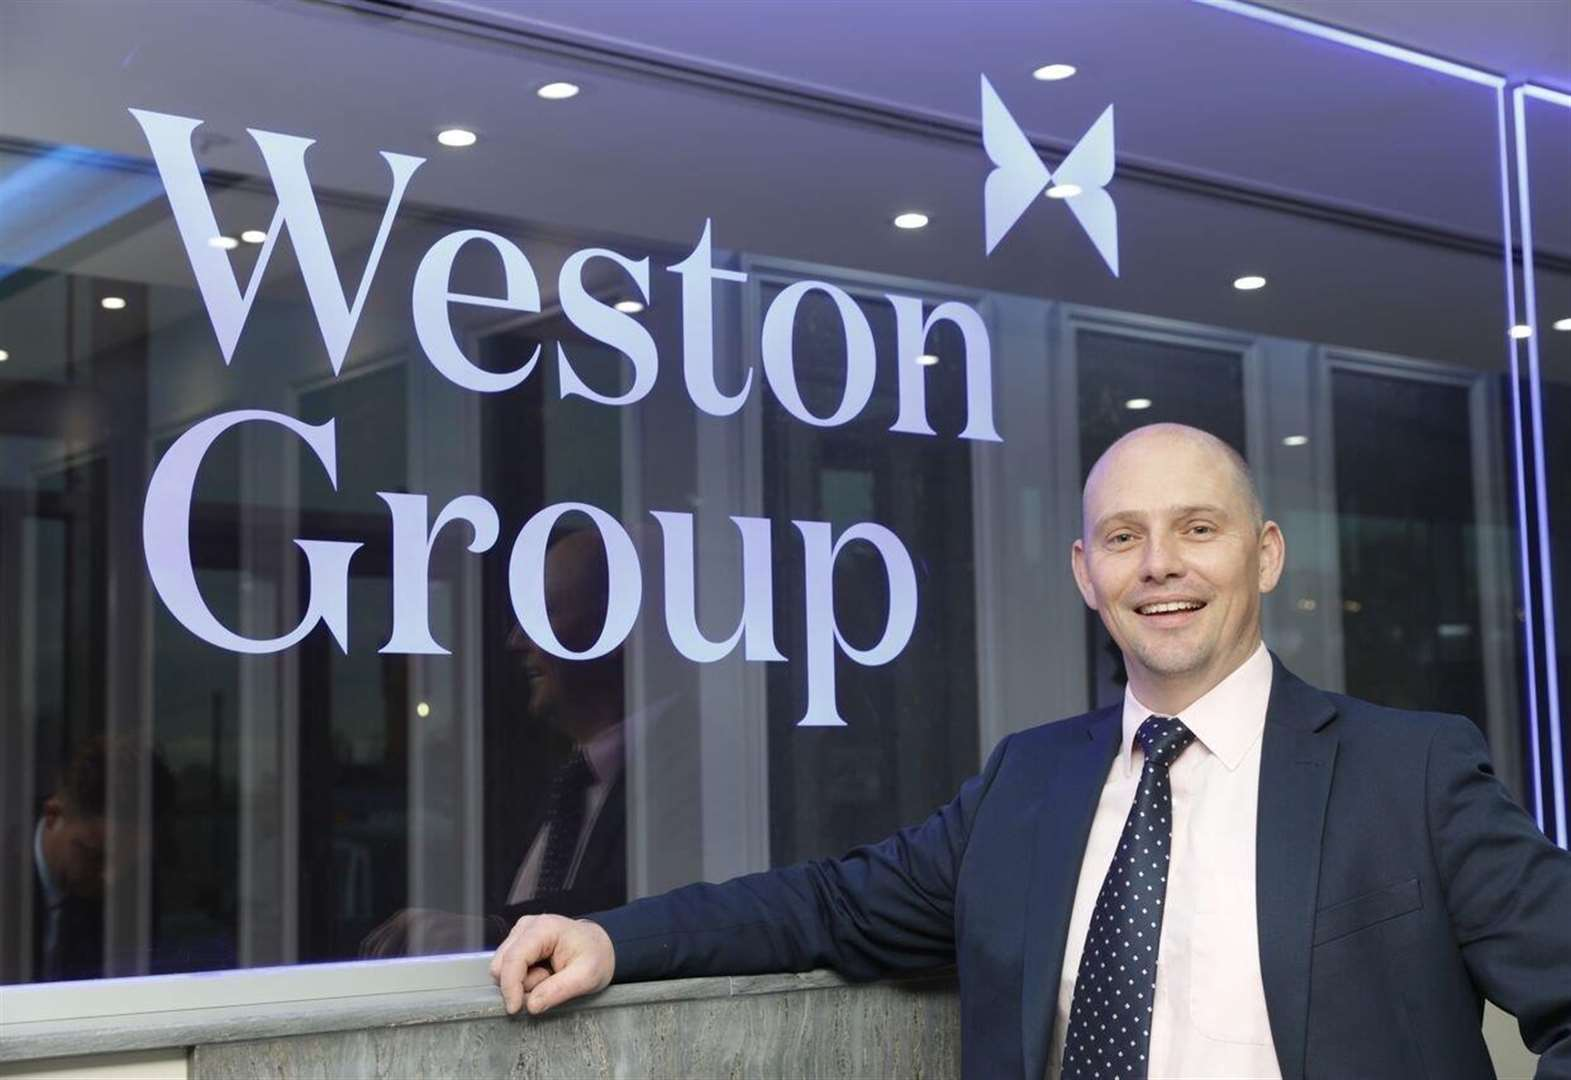 Former handyman to oversee growth of Weston's business centres